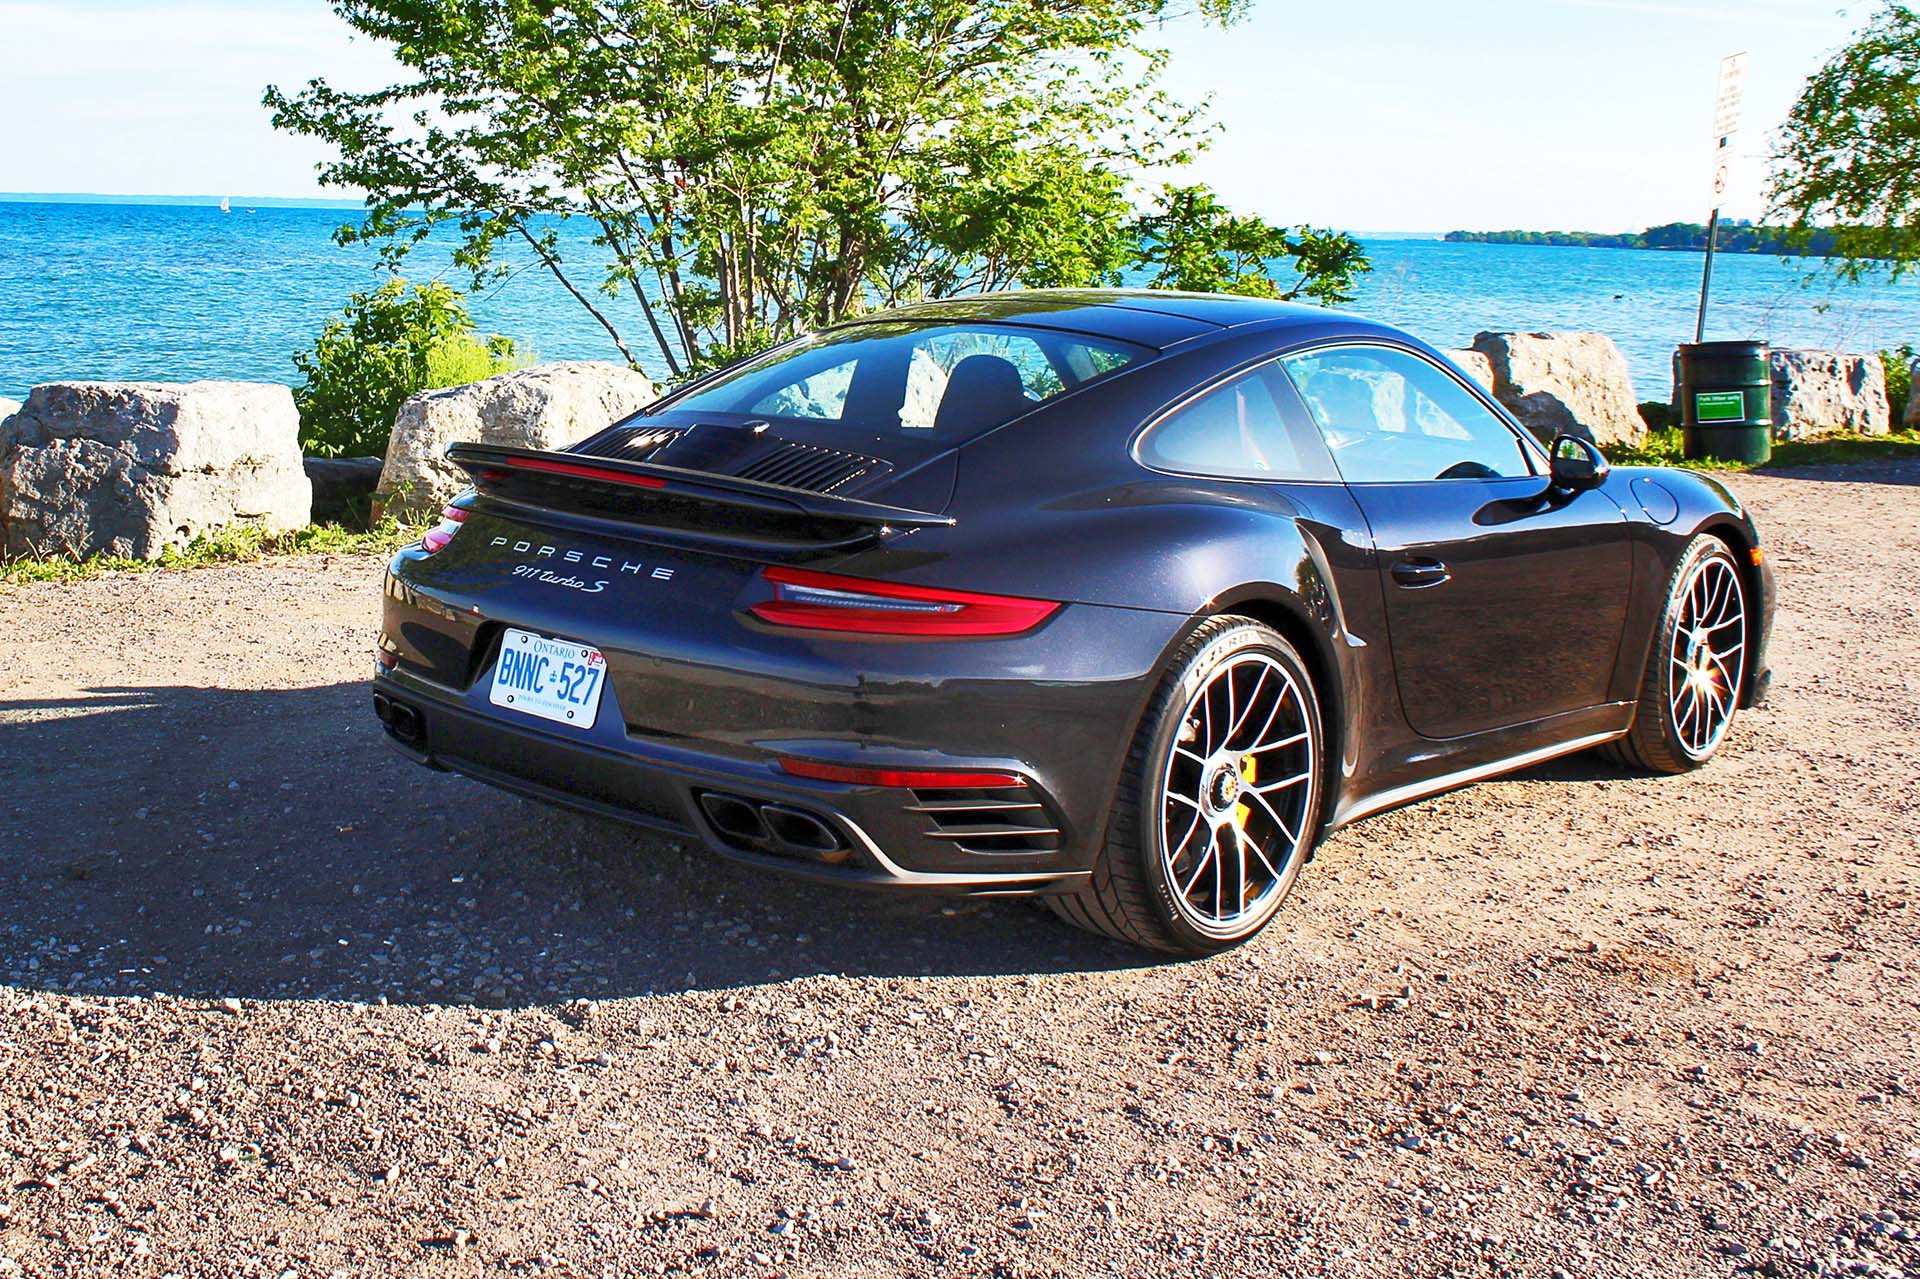 2017 Porsche 911 Turbo S Autos Ca